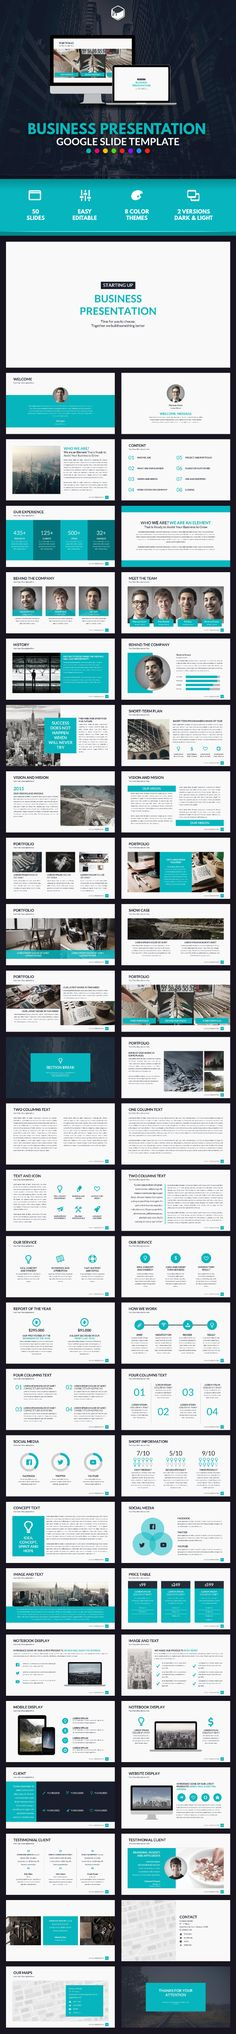 Ever - Multipurpose Presentation Template Presentation templates - business presentation template